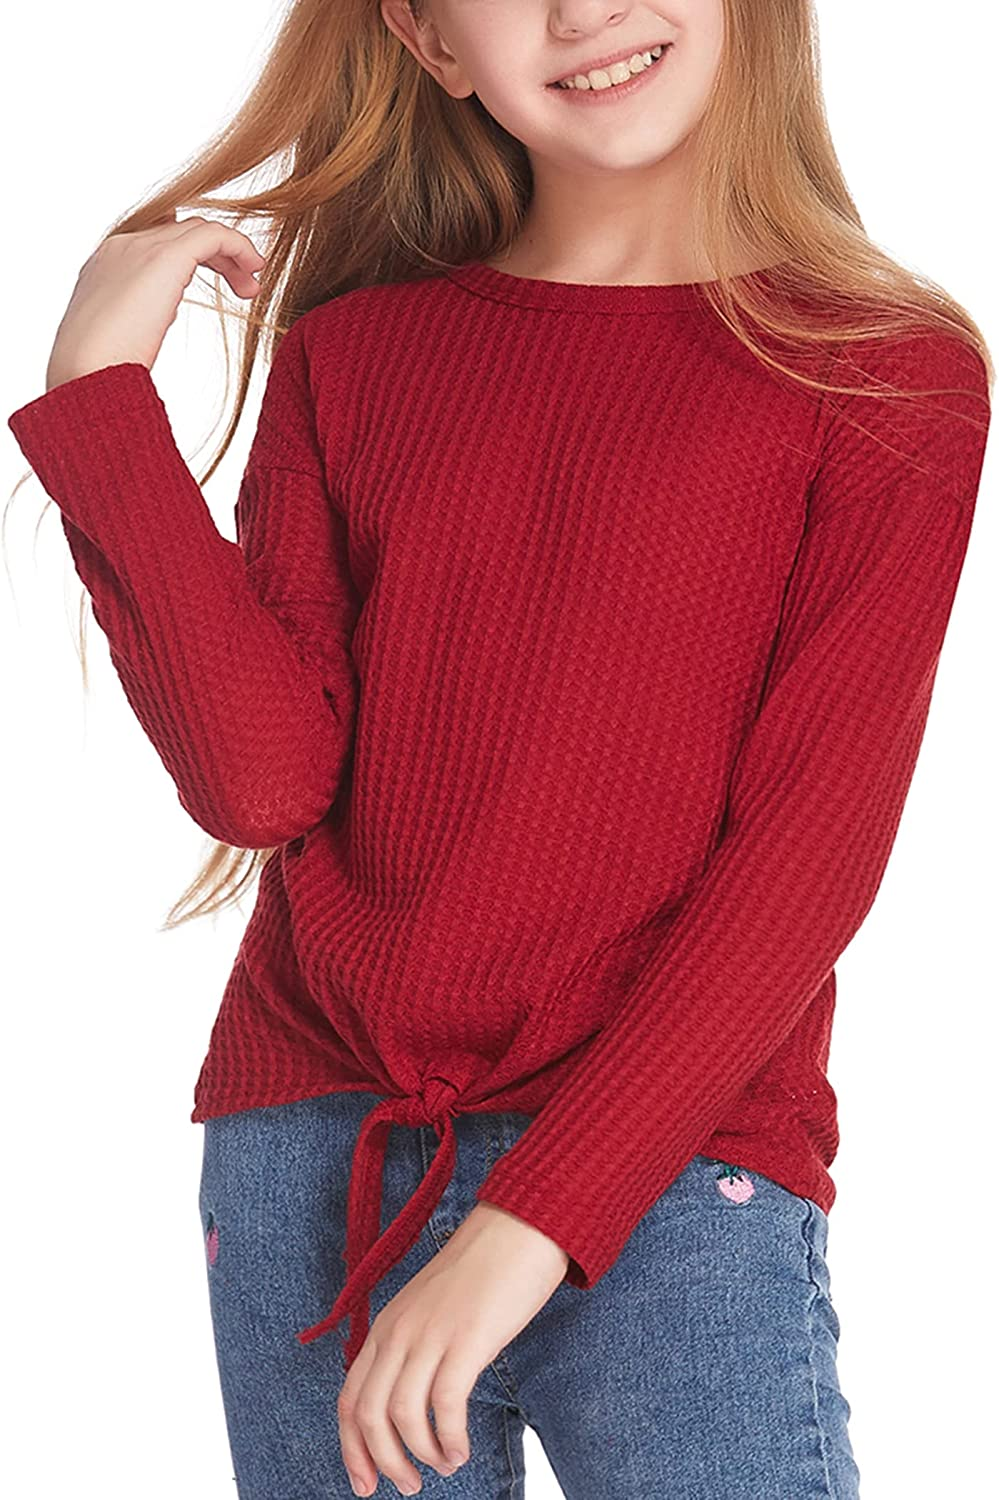 Arshiner Girls Knit Tunic Colorblock Tops OFFicial store Pull Long NEW before selling Sleeve Loose